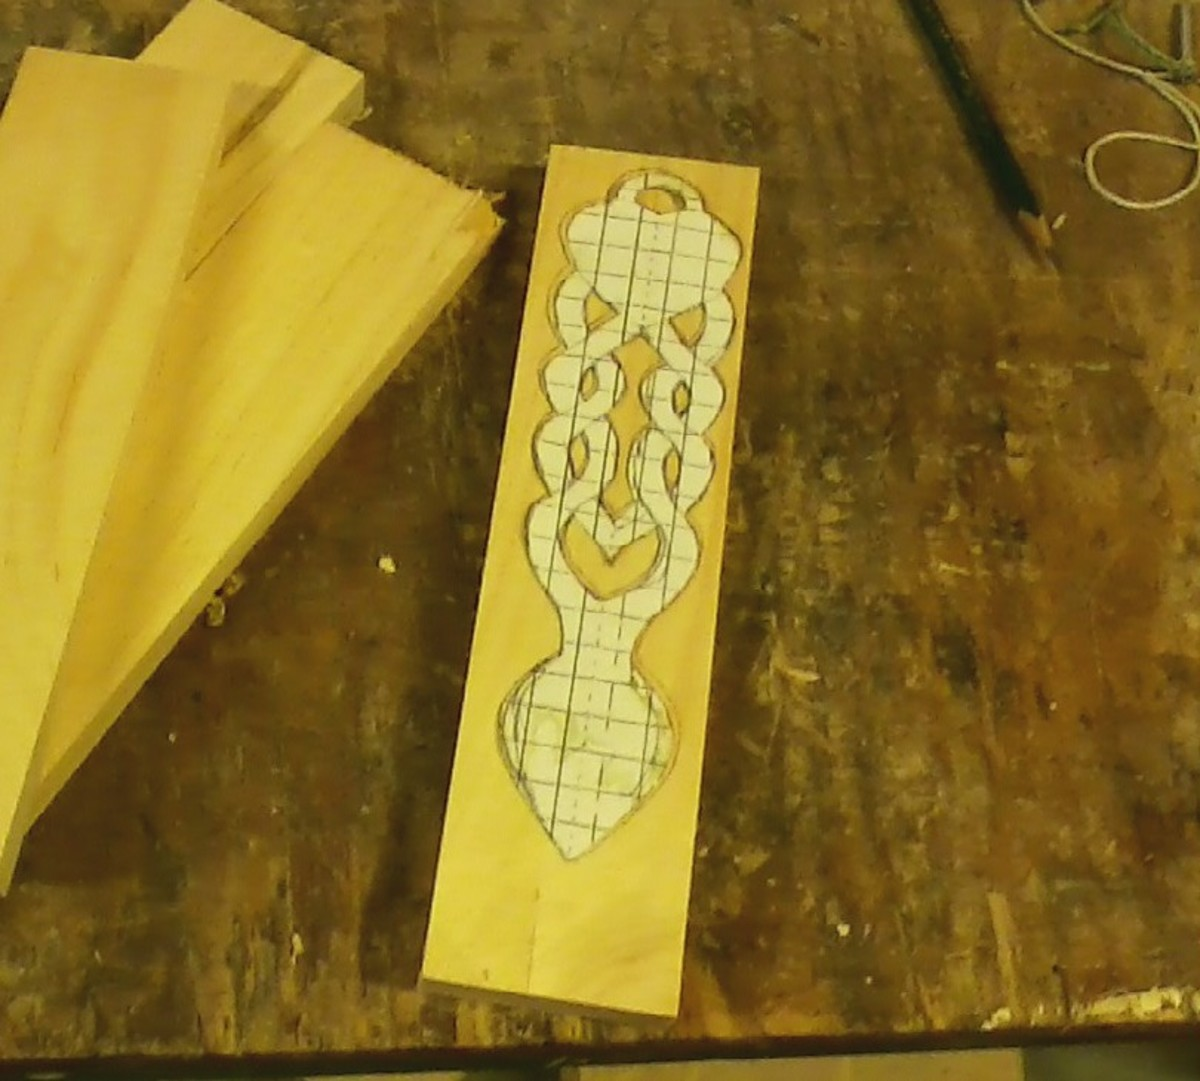 Transferring the pattern to the wood.